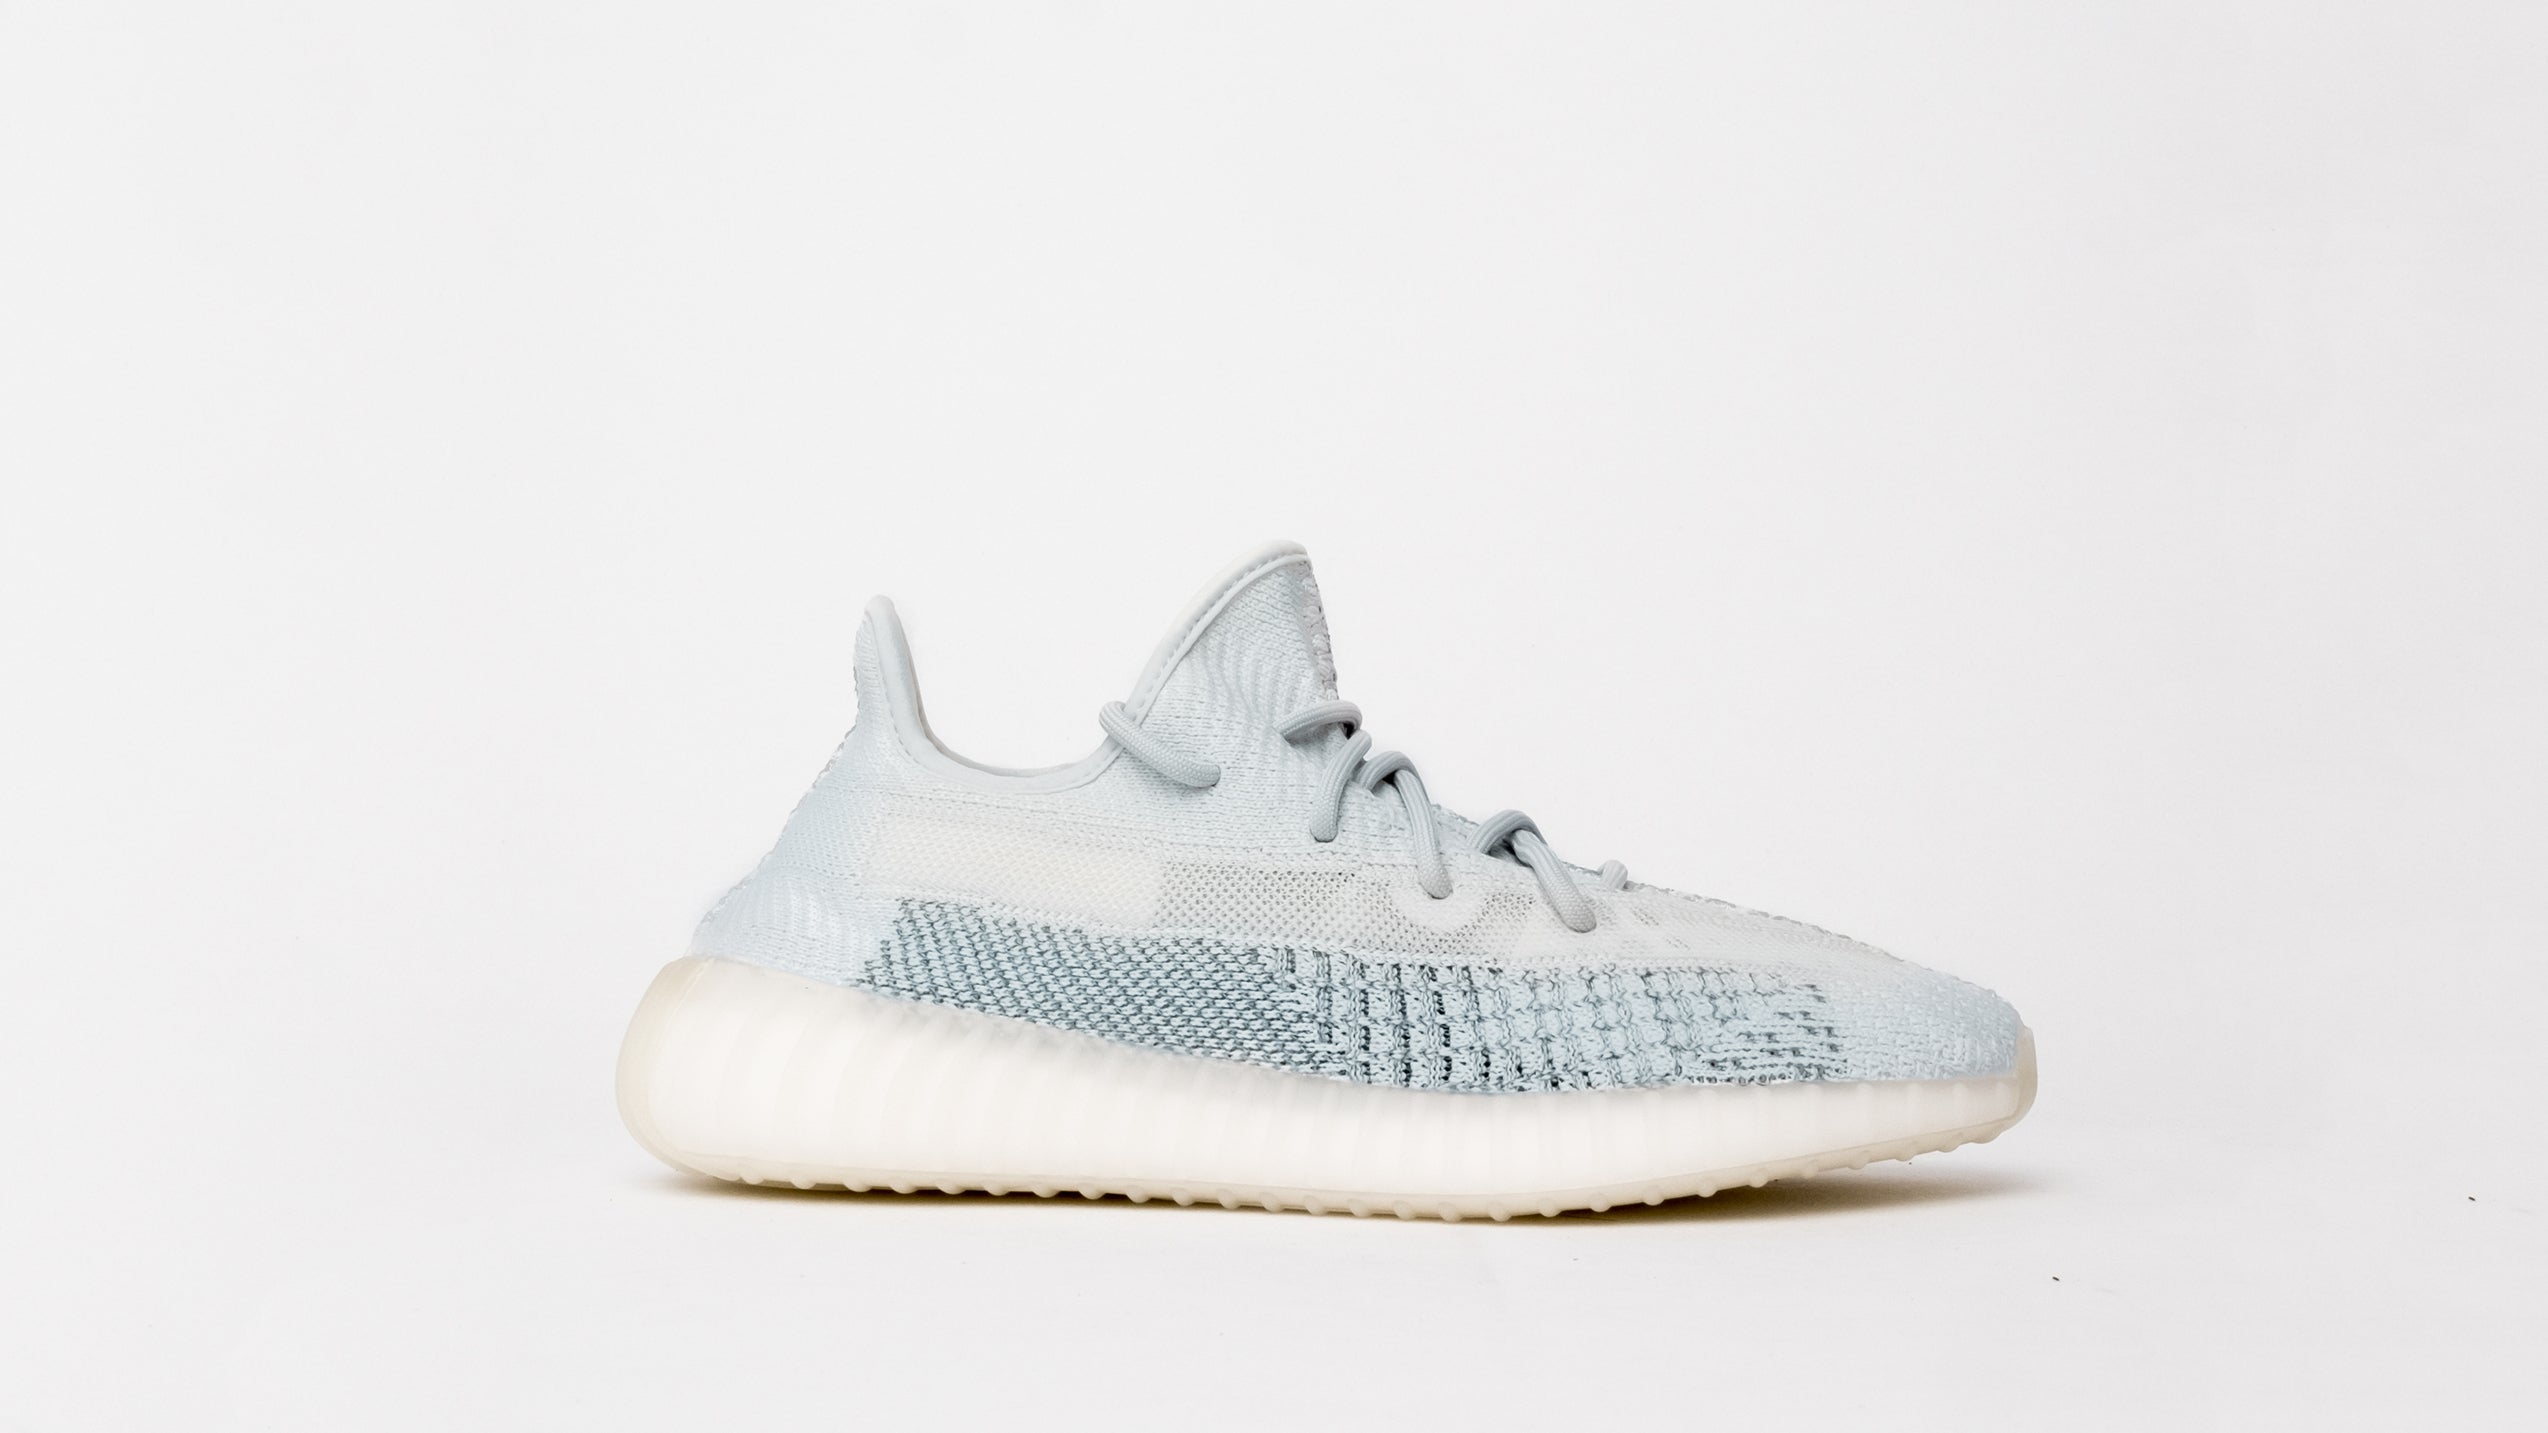 YEEZY BOOST 350 V2 CLOUD WHITE RAFFLE CLOSED